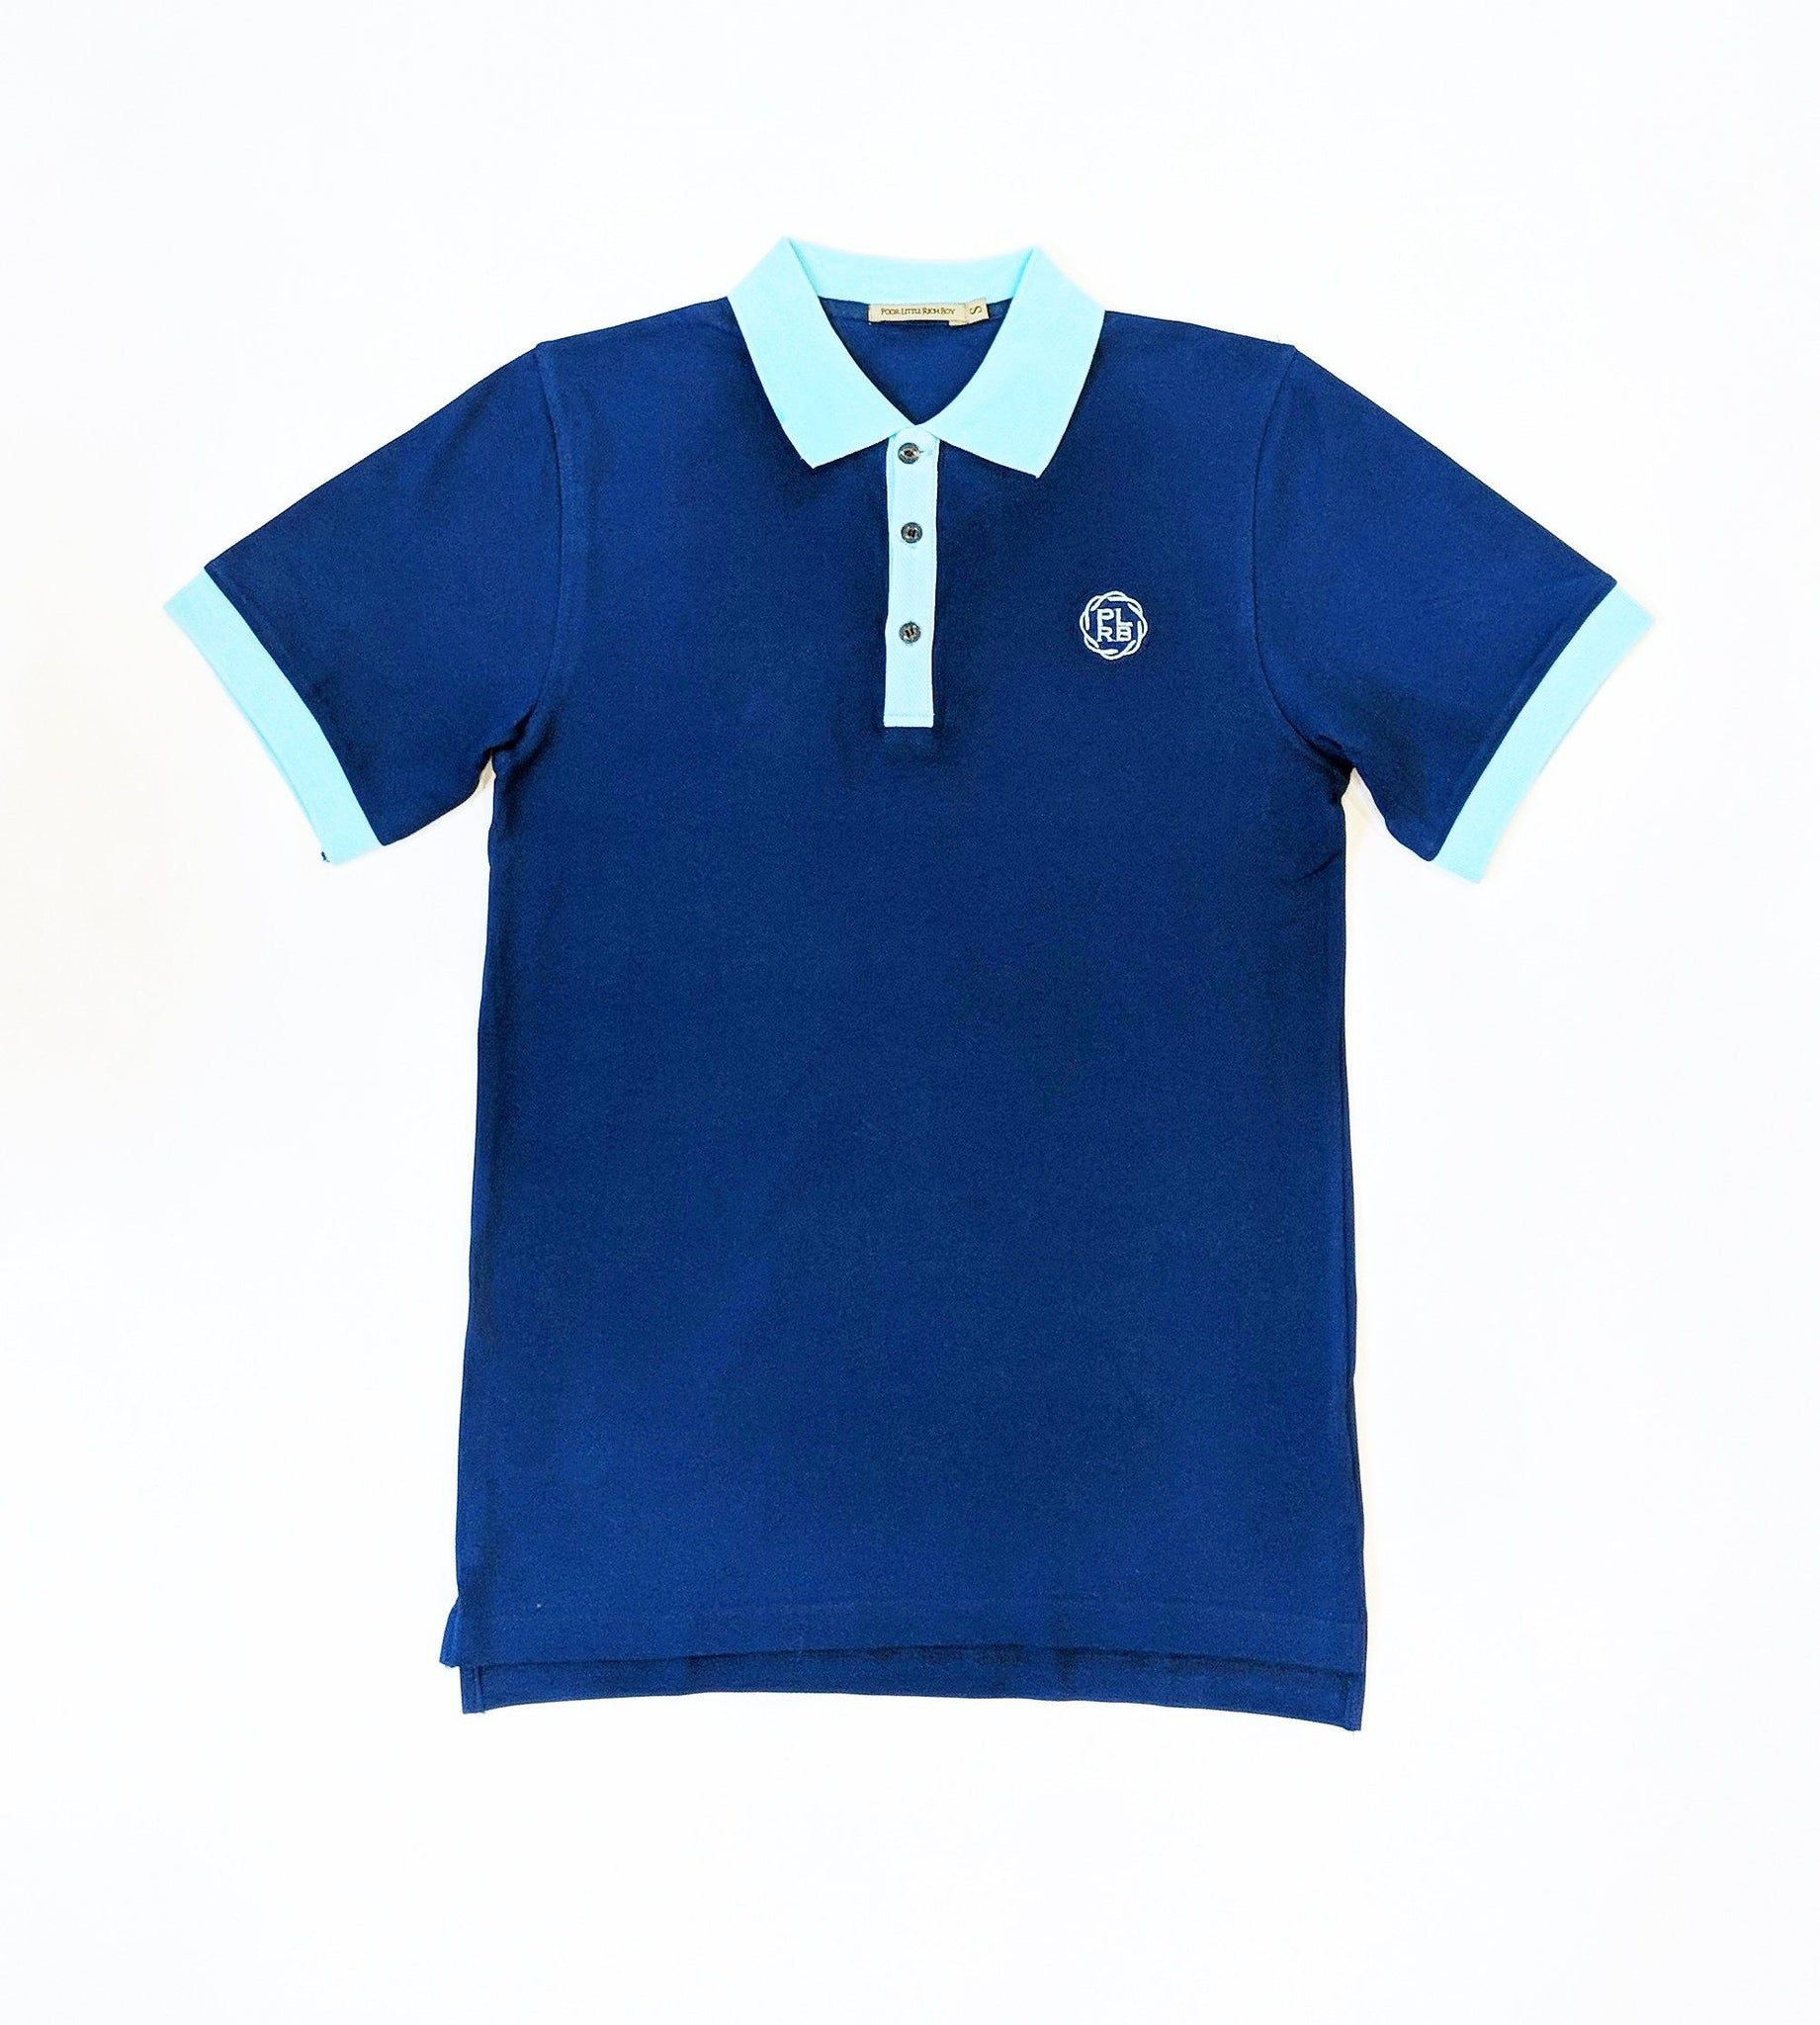 HEALDSBURG POLO SHIRT IN NAVY BLUE | Poor Little Rich Boy Clothing